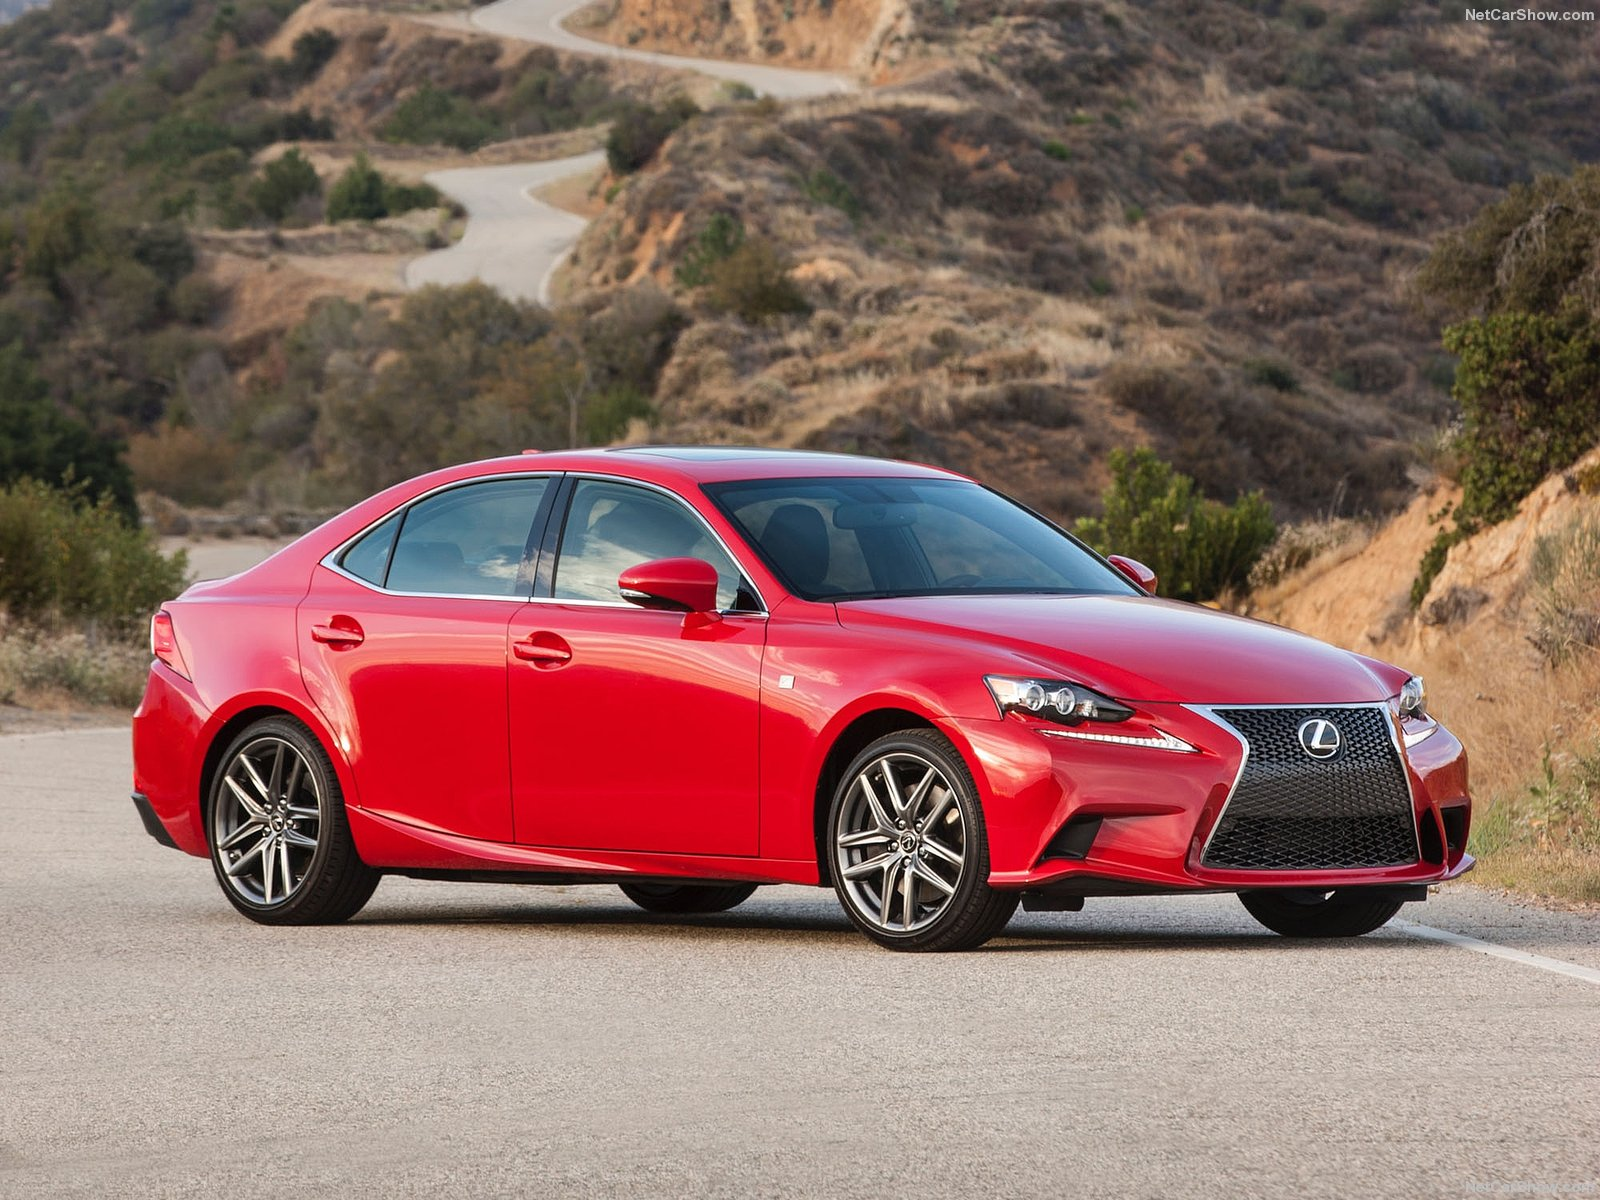 Lexus IS F Sport US Version photos Gallery with 40 pics